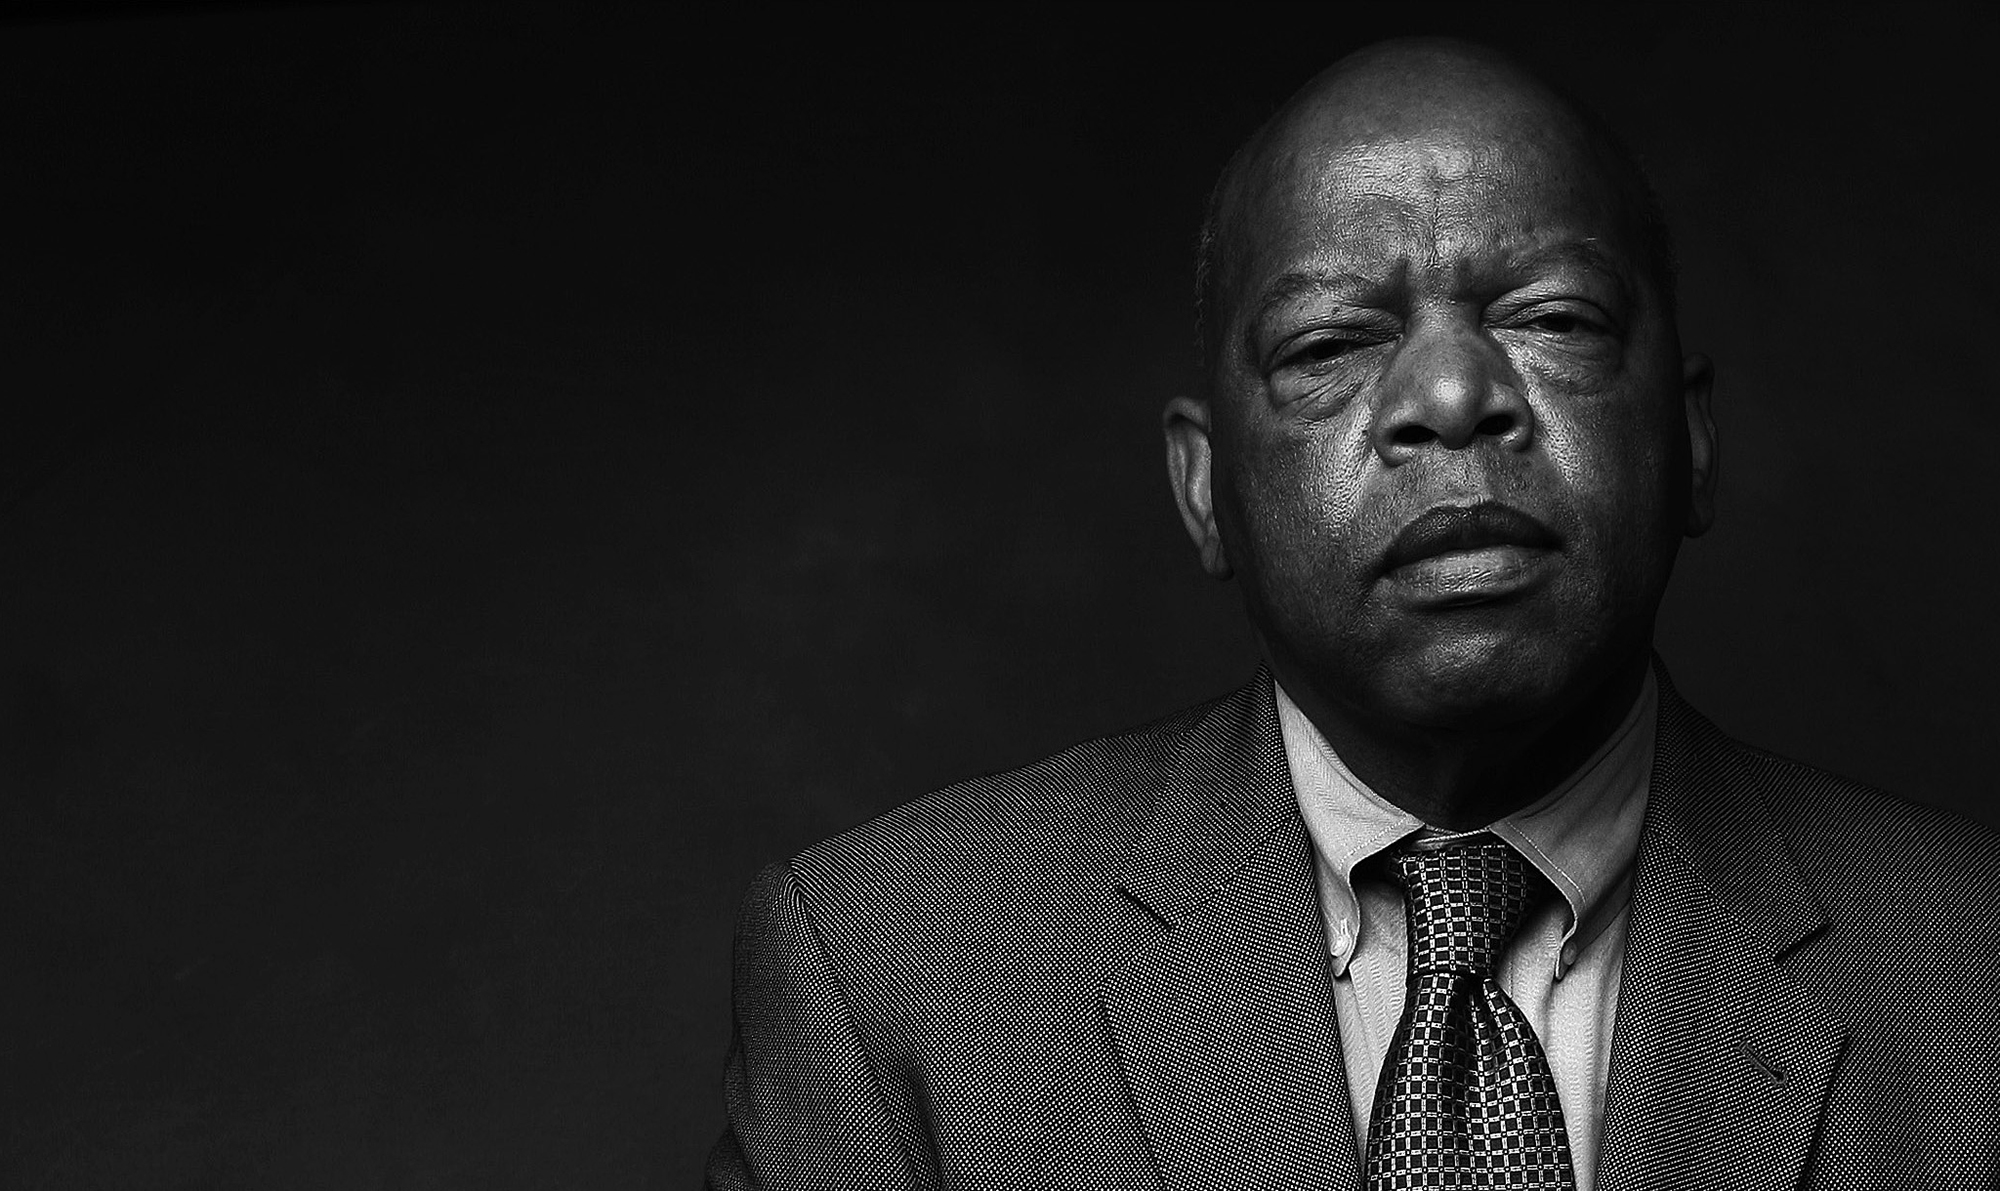 Rep. John Lewis sat for this portrait by the AJC in 2008. (Pouya Dianat / AJC file)